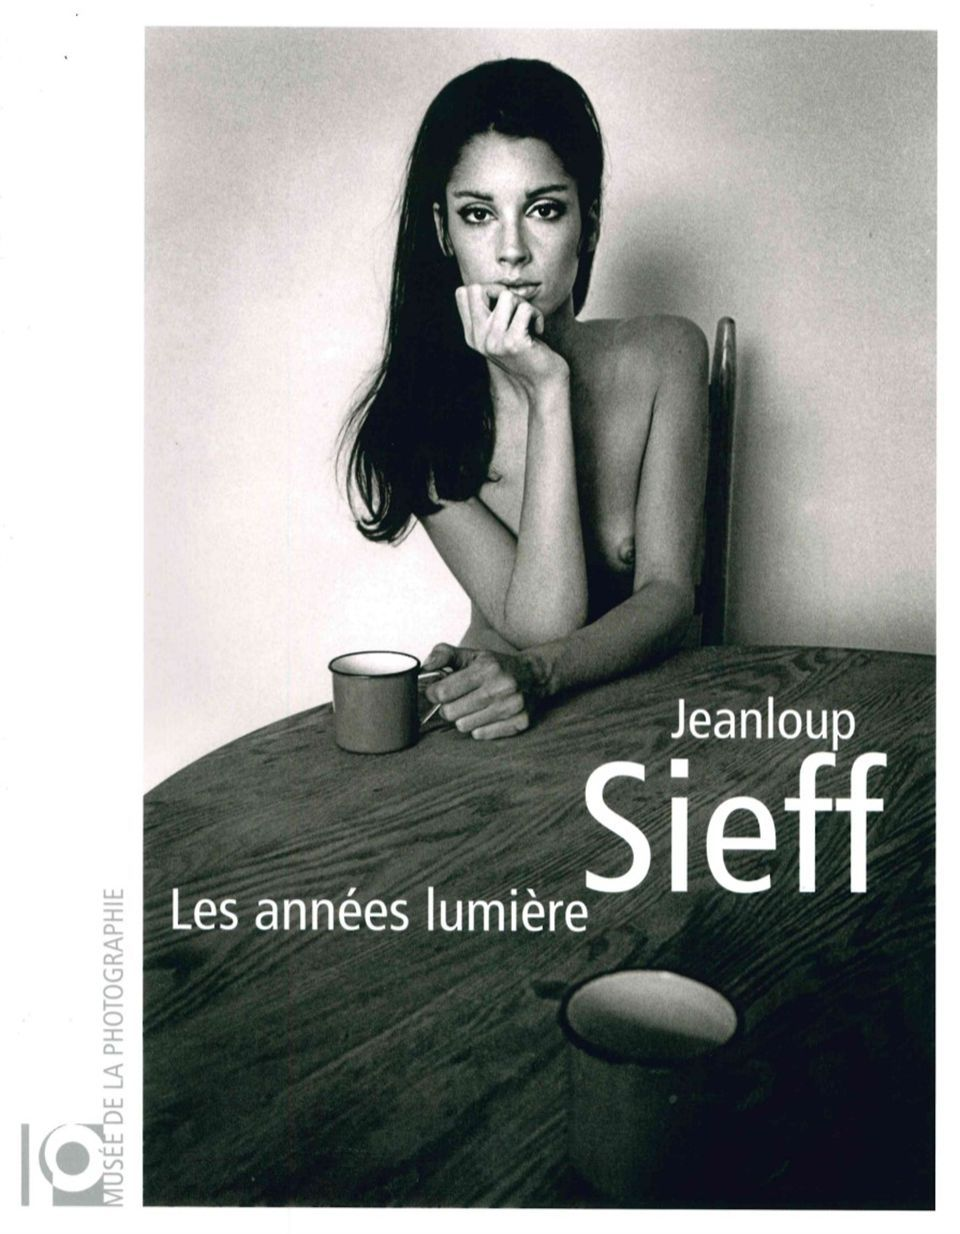 JEANLOUP SIEFF - LES ANNEES LUMIERES